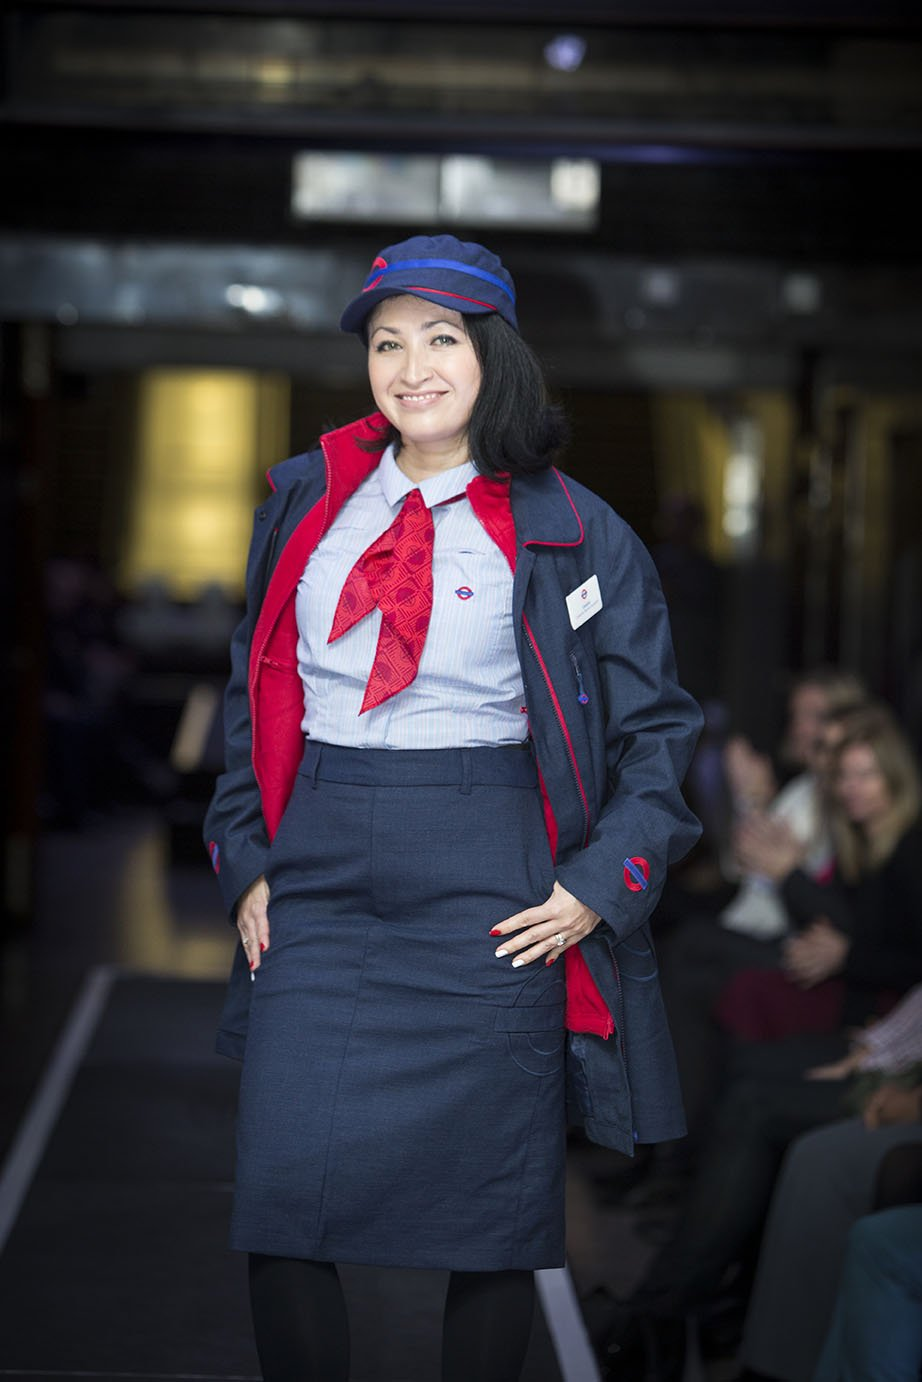 Transport for London Uniform